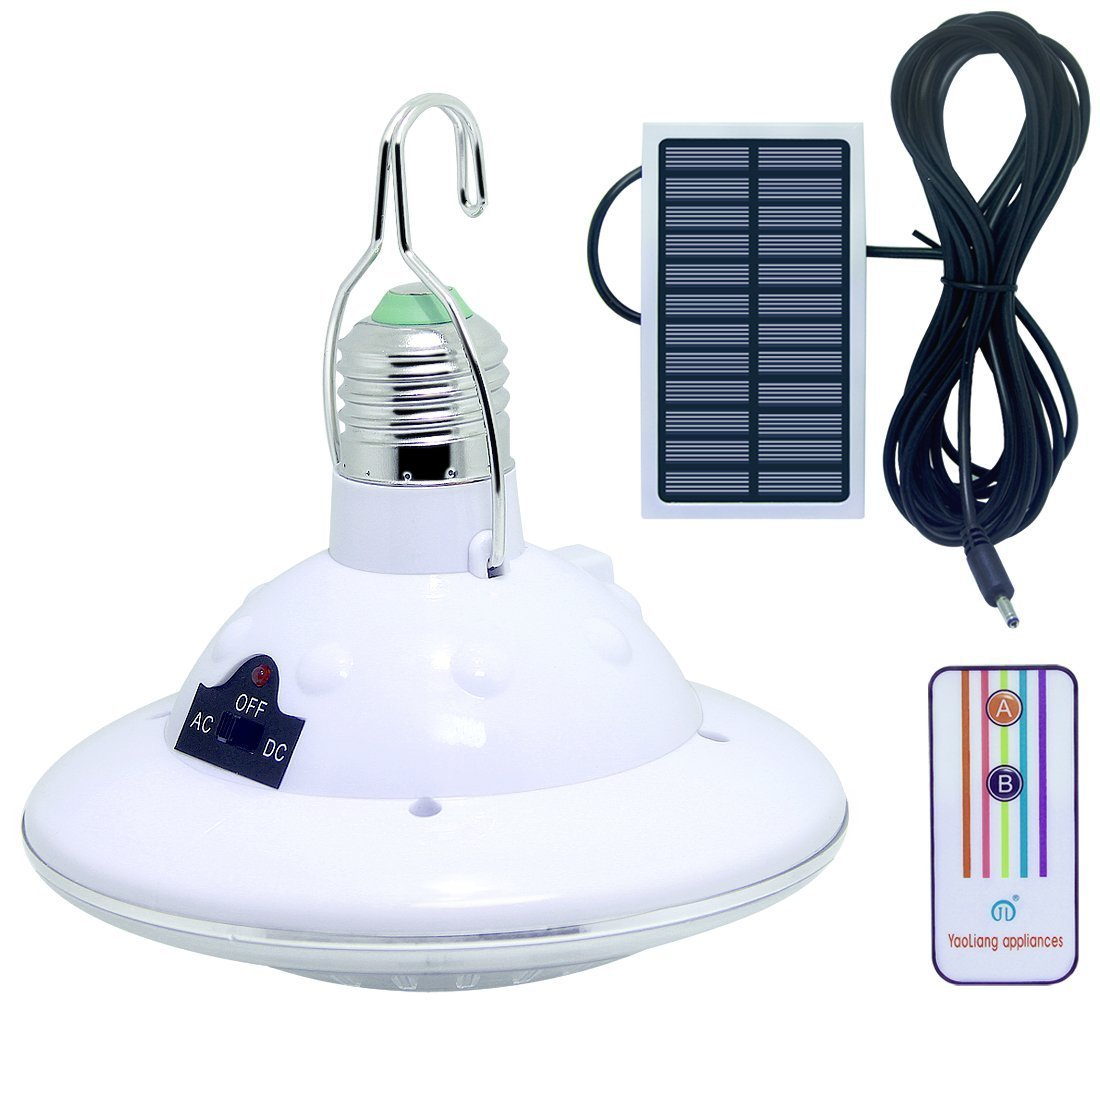 LISOPO 22LED Solar Remote Control Lights,Portable Outdoor Solar Lamp Hooking Garden Camp Emergency Lighting Chandelier